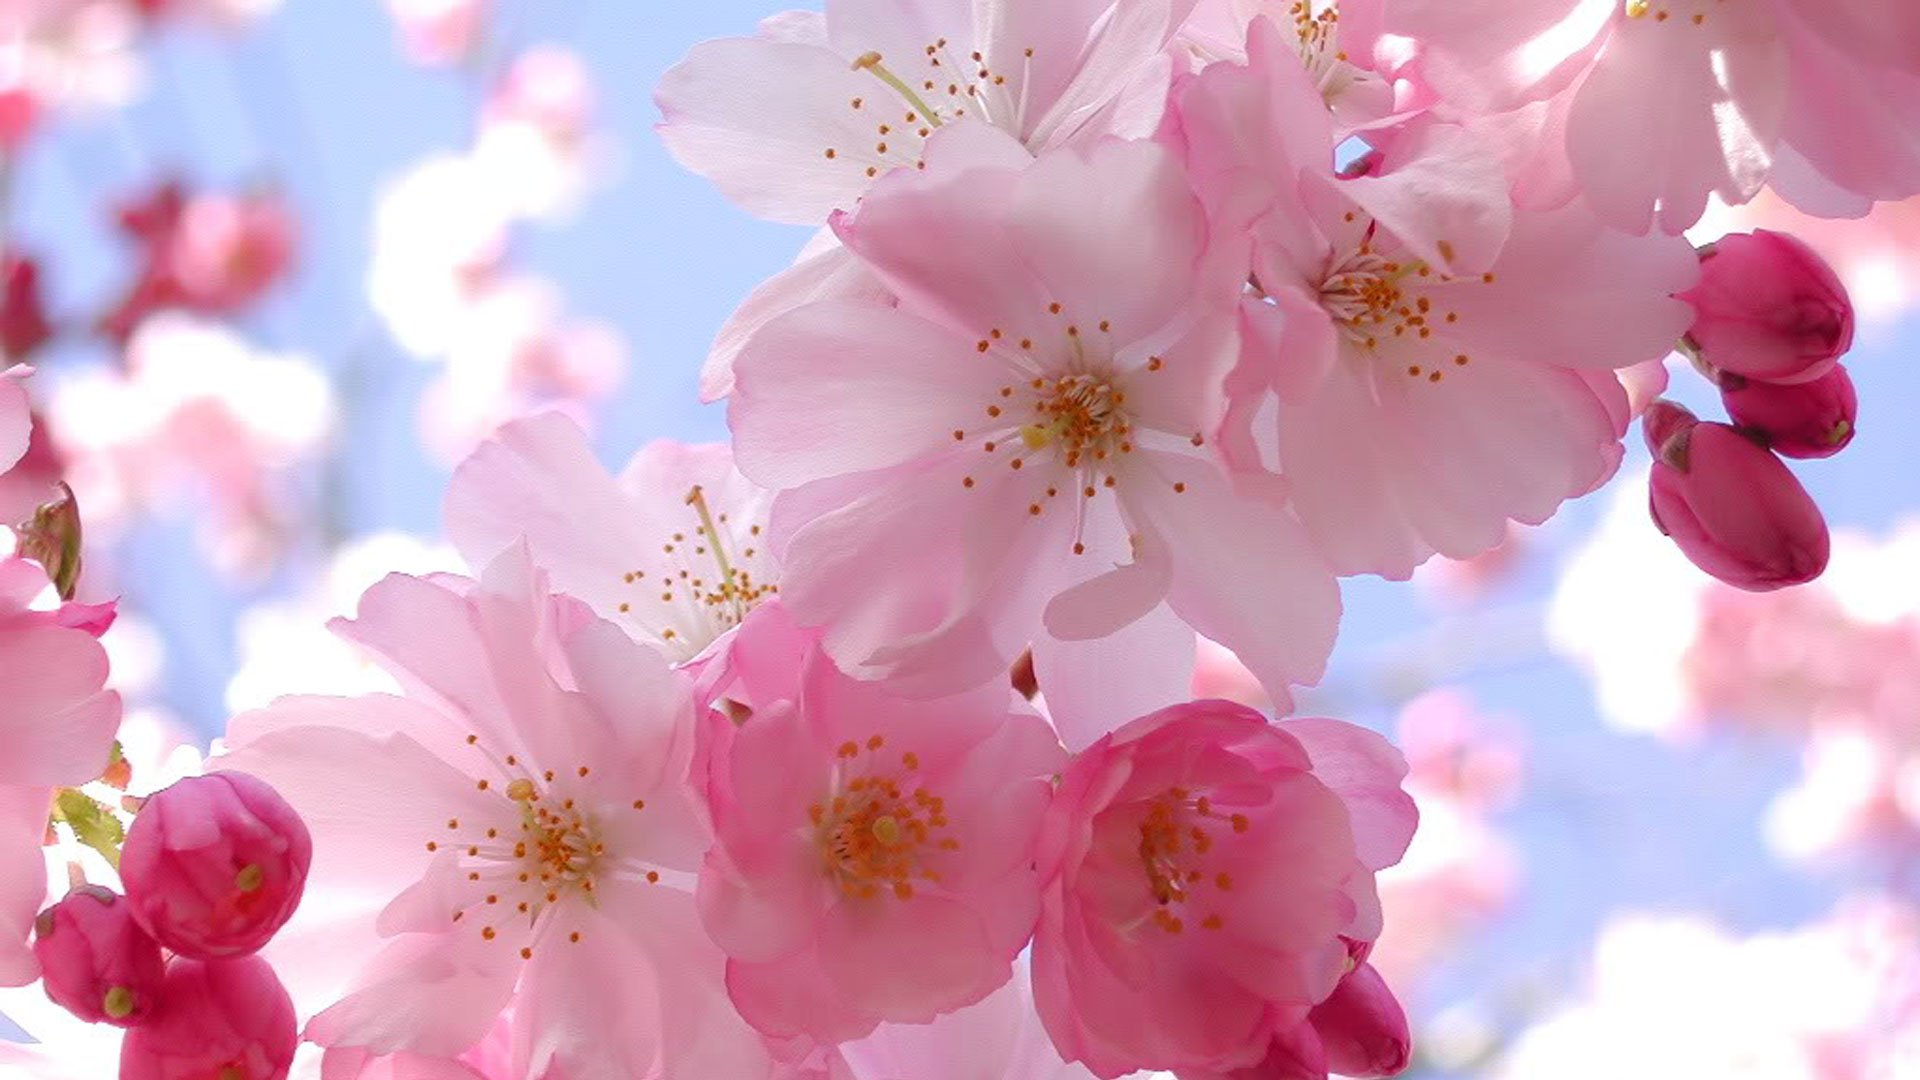 Pink Cherry Blossom Wallpaper for iPhone Wallpaper with 1920x1080 1920x1080